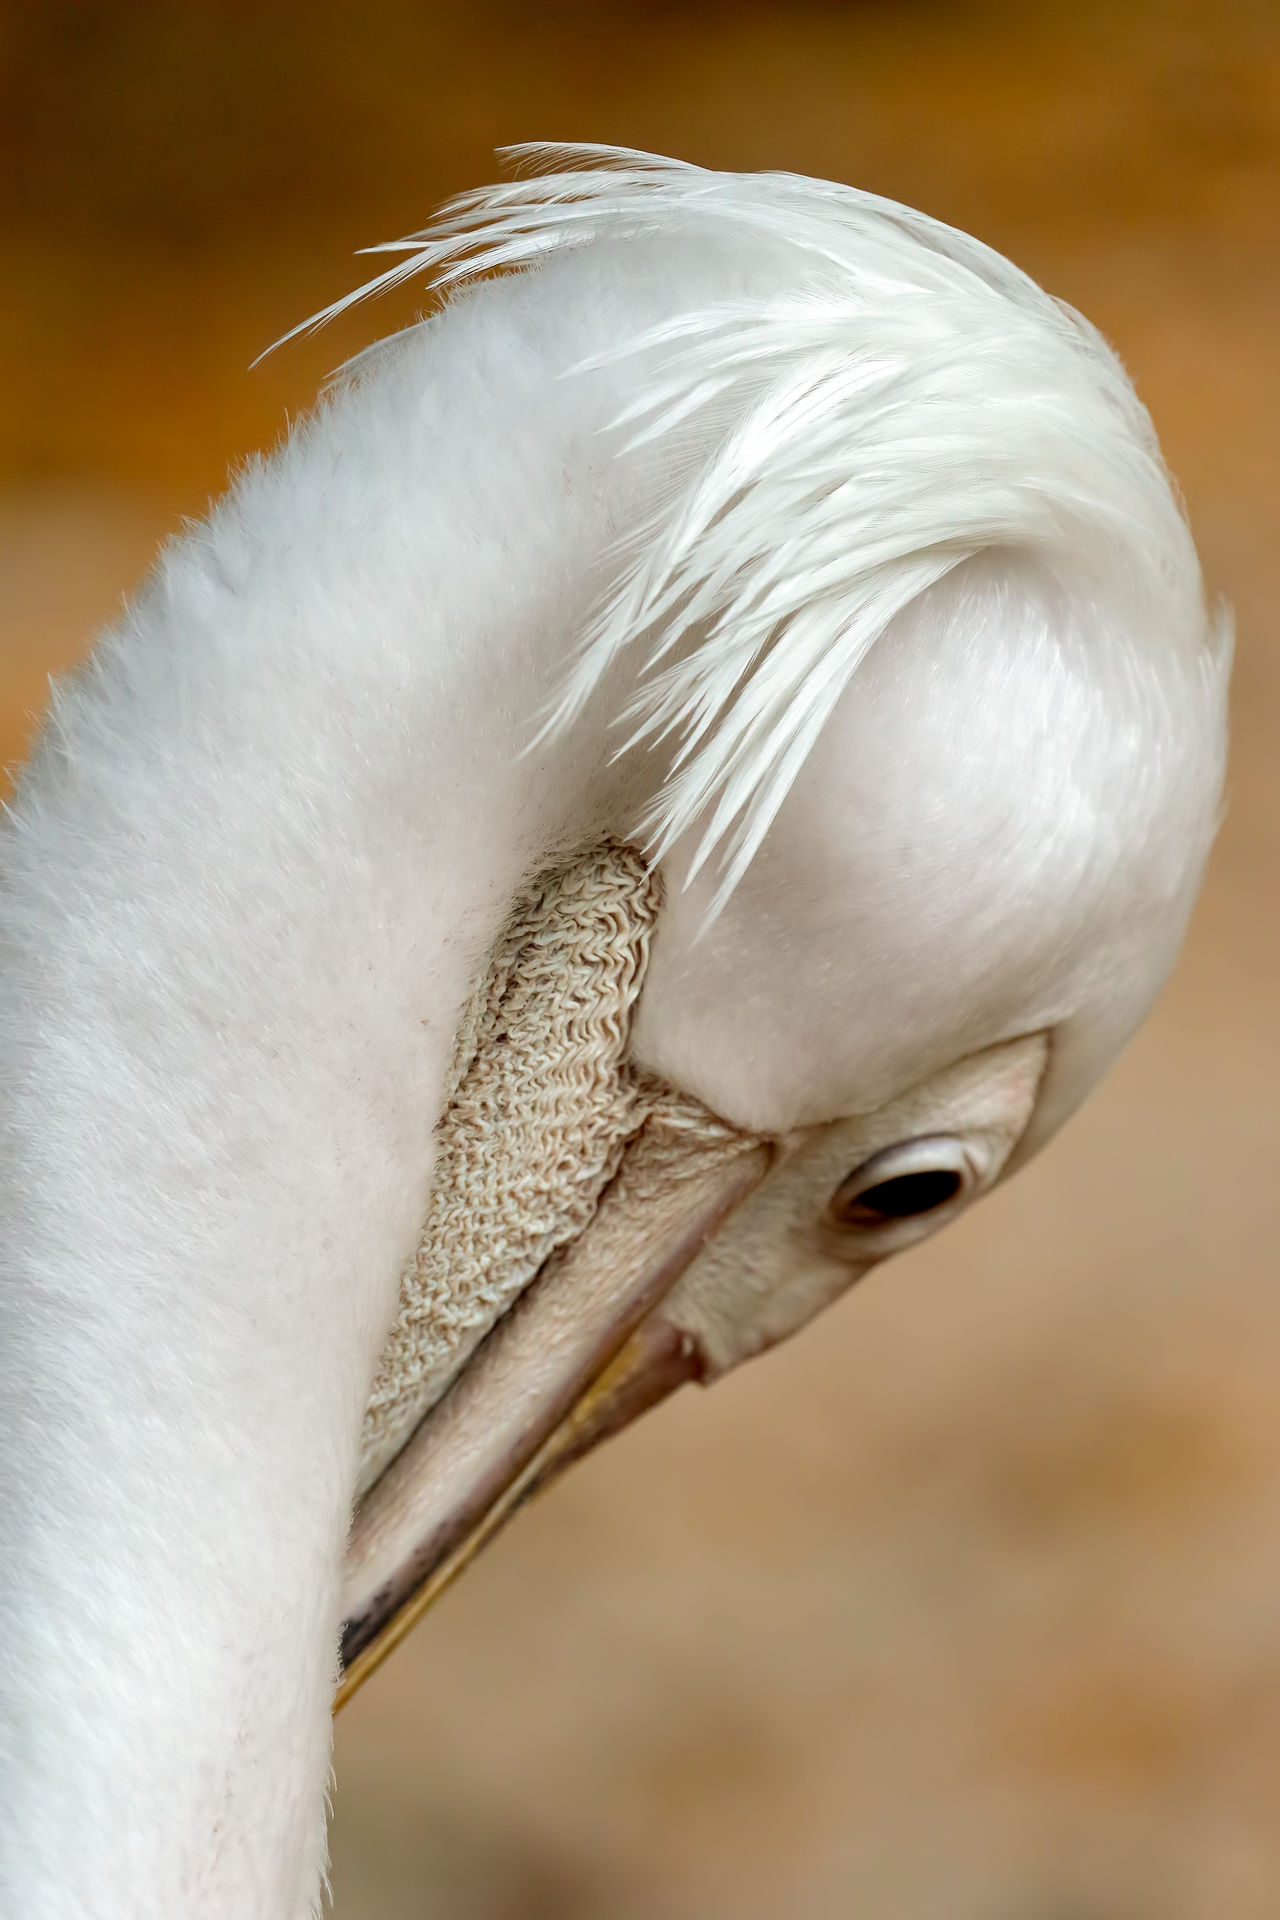 Animal Body Part Animal Head  Avian Beak Beauty In Nature Close-up Day Detail Feather  Focus On Foreground Nature No People Outdoors Part Of Selective Focus Softness White White Color Wildlife